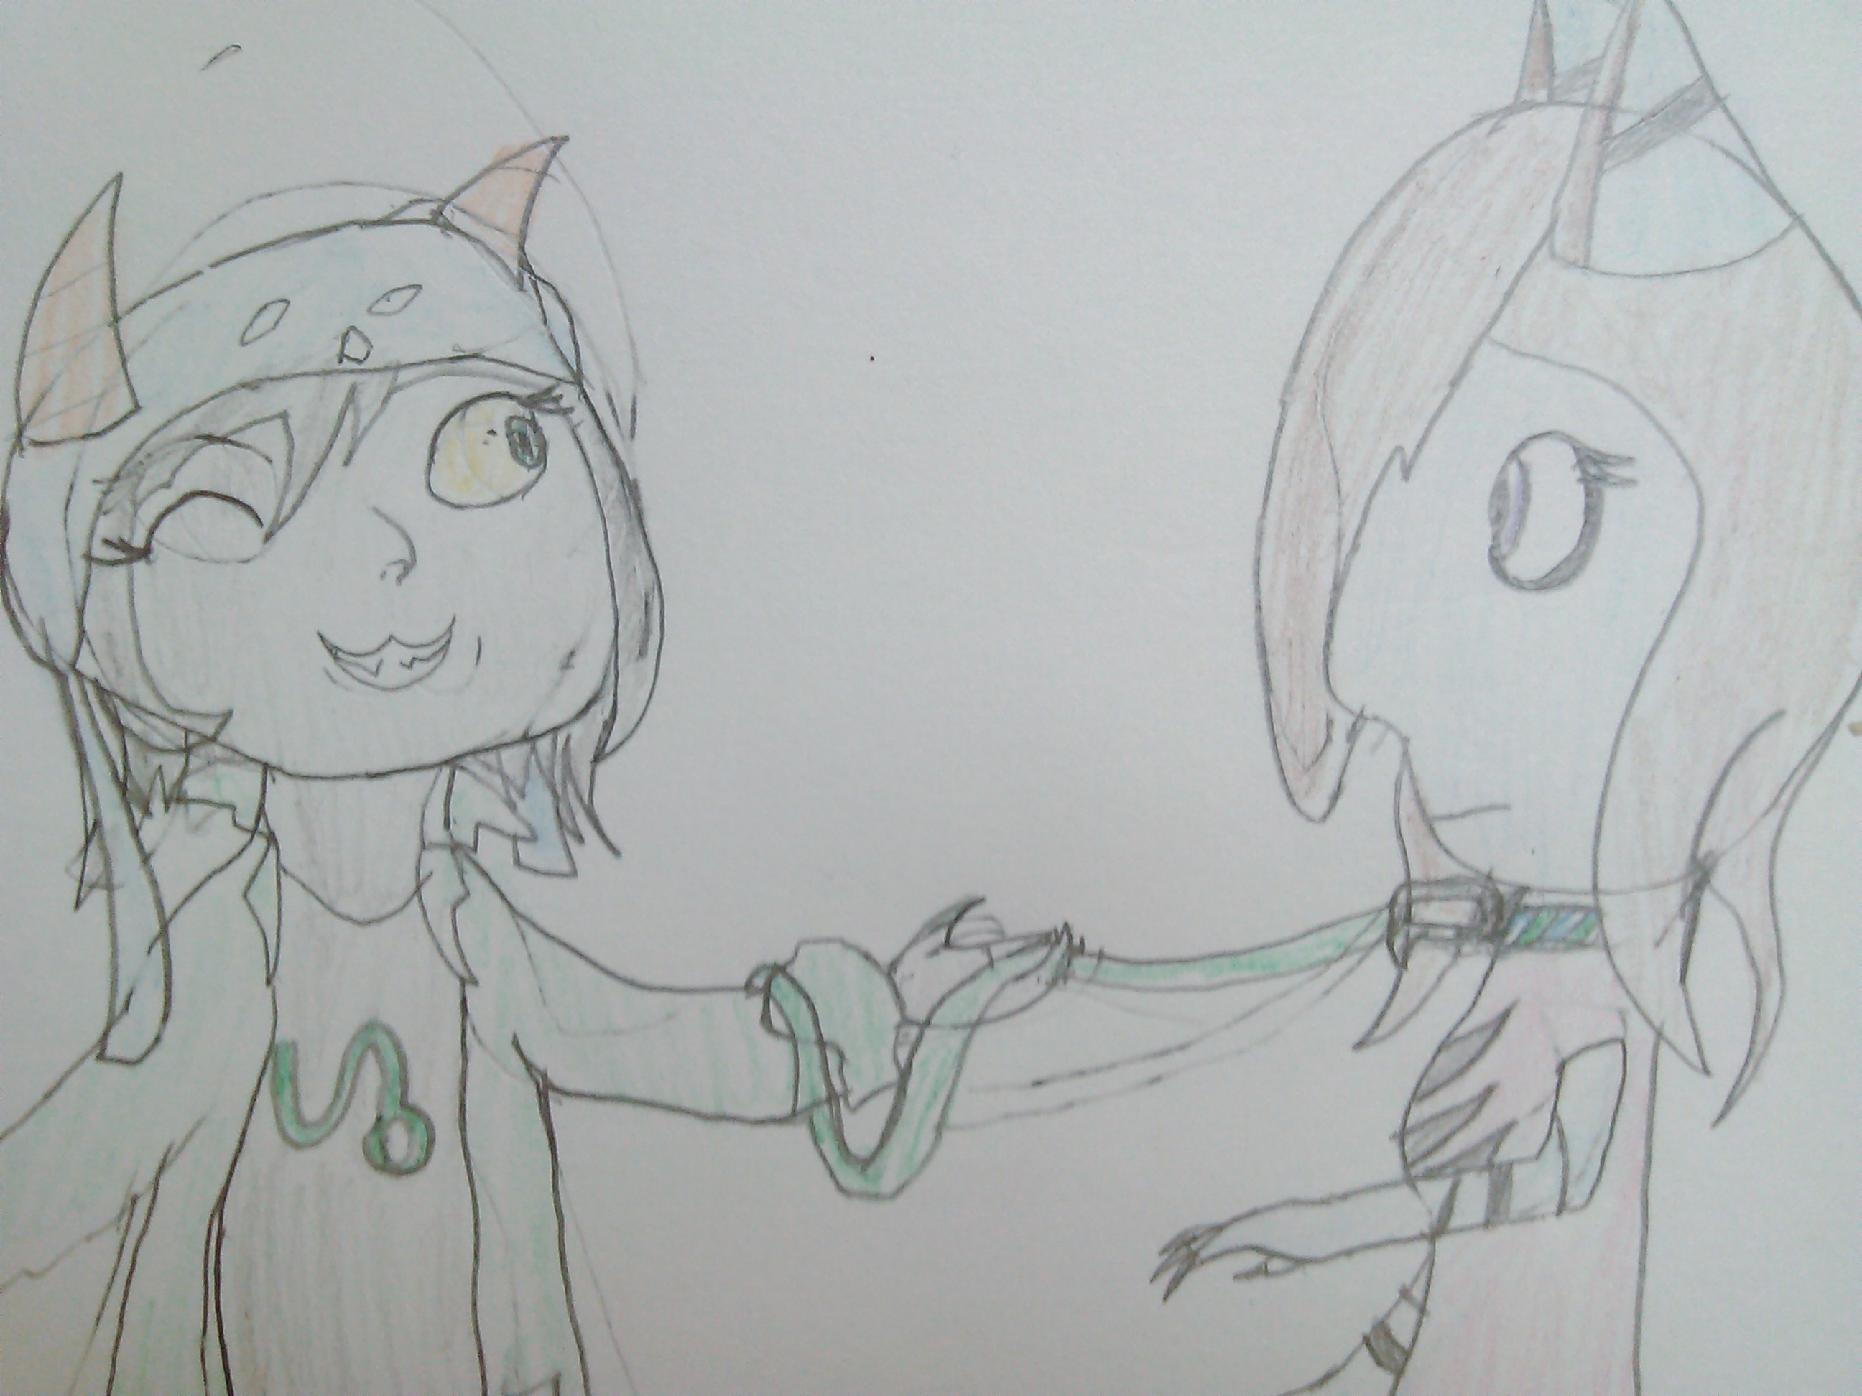 Nepeta holding Lauray by a leash